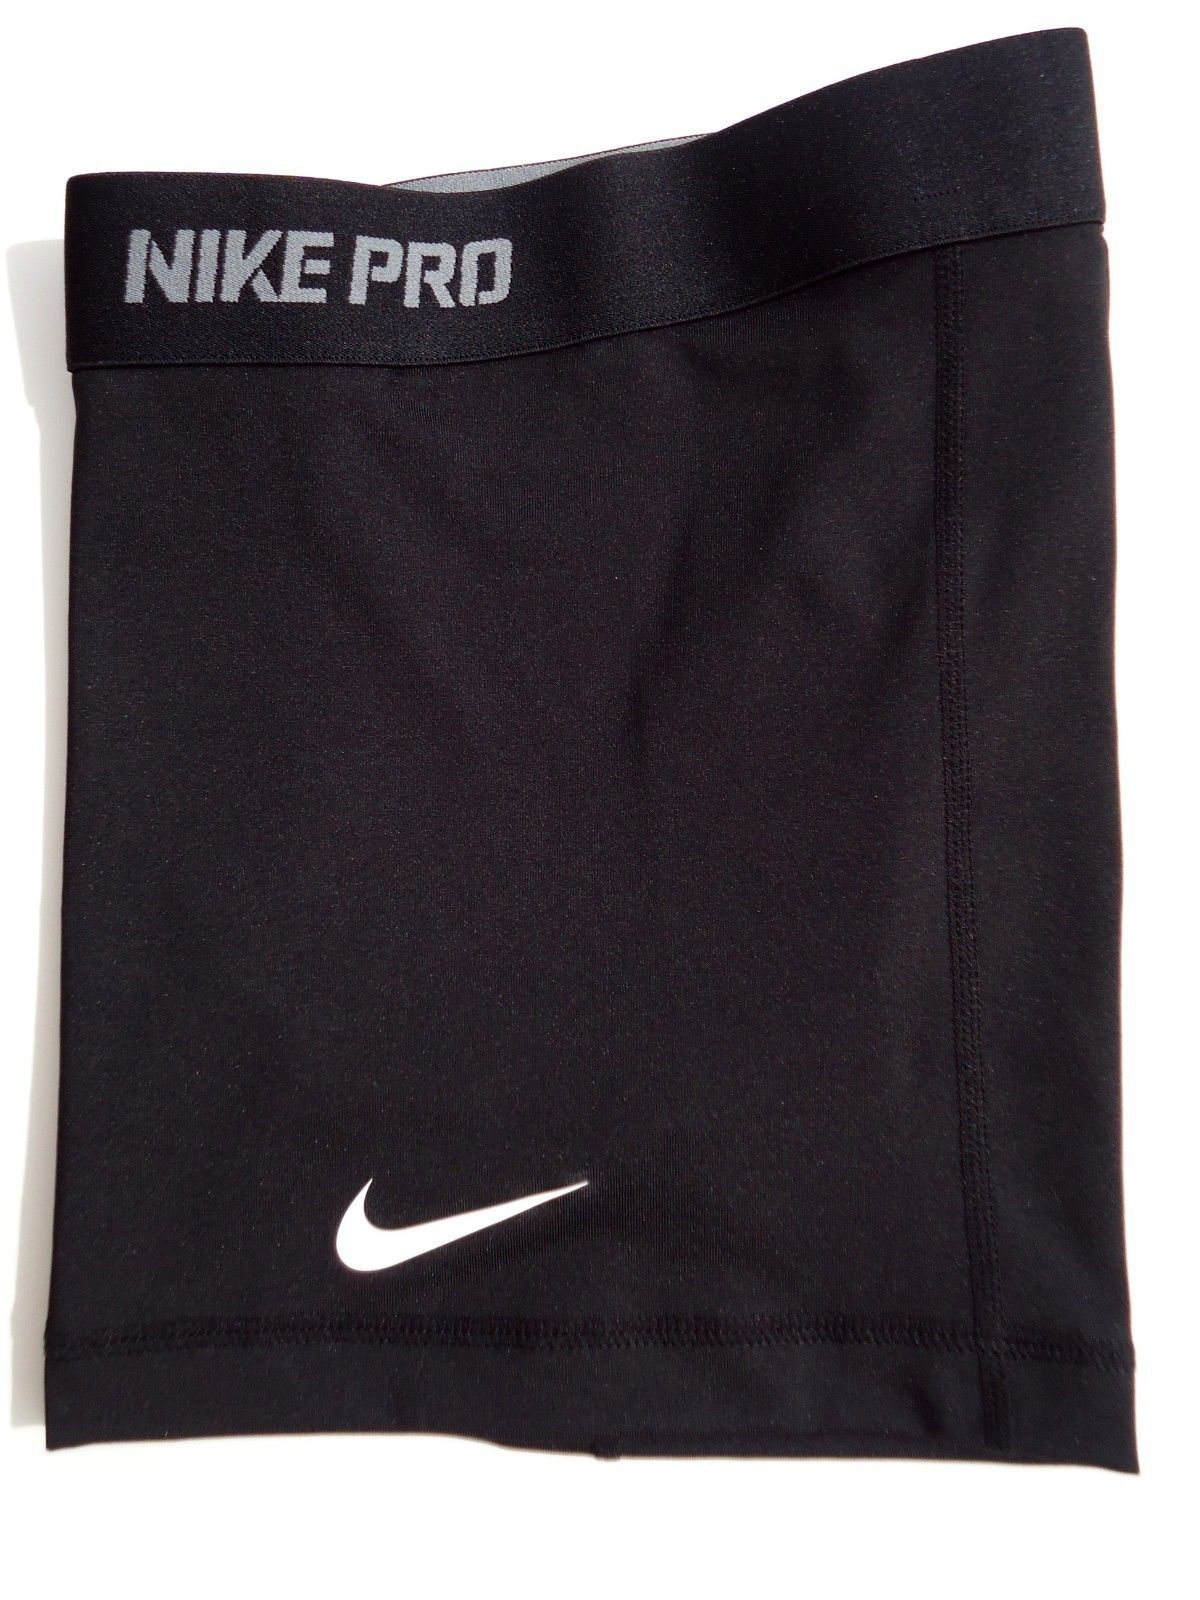 "New Black s Nike Pro Women's Dri Fit 2 5"" Compression Shorts Size Small 